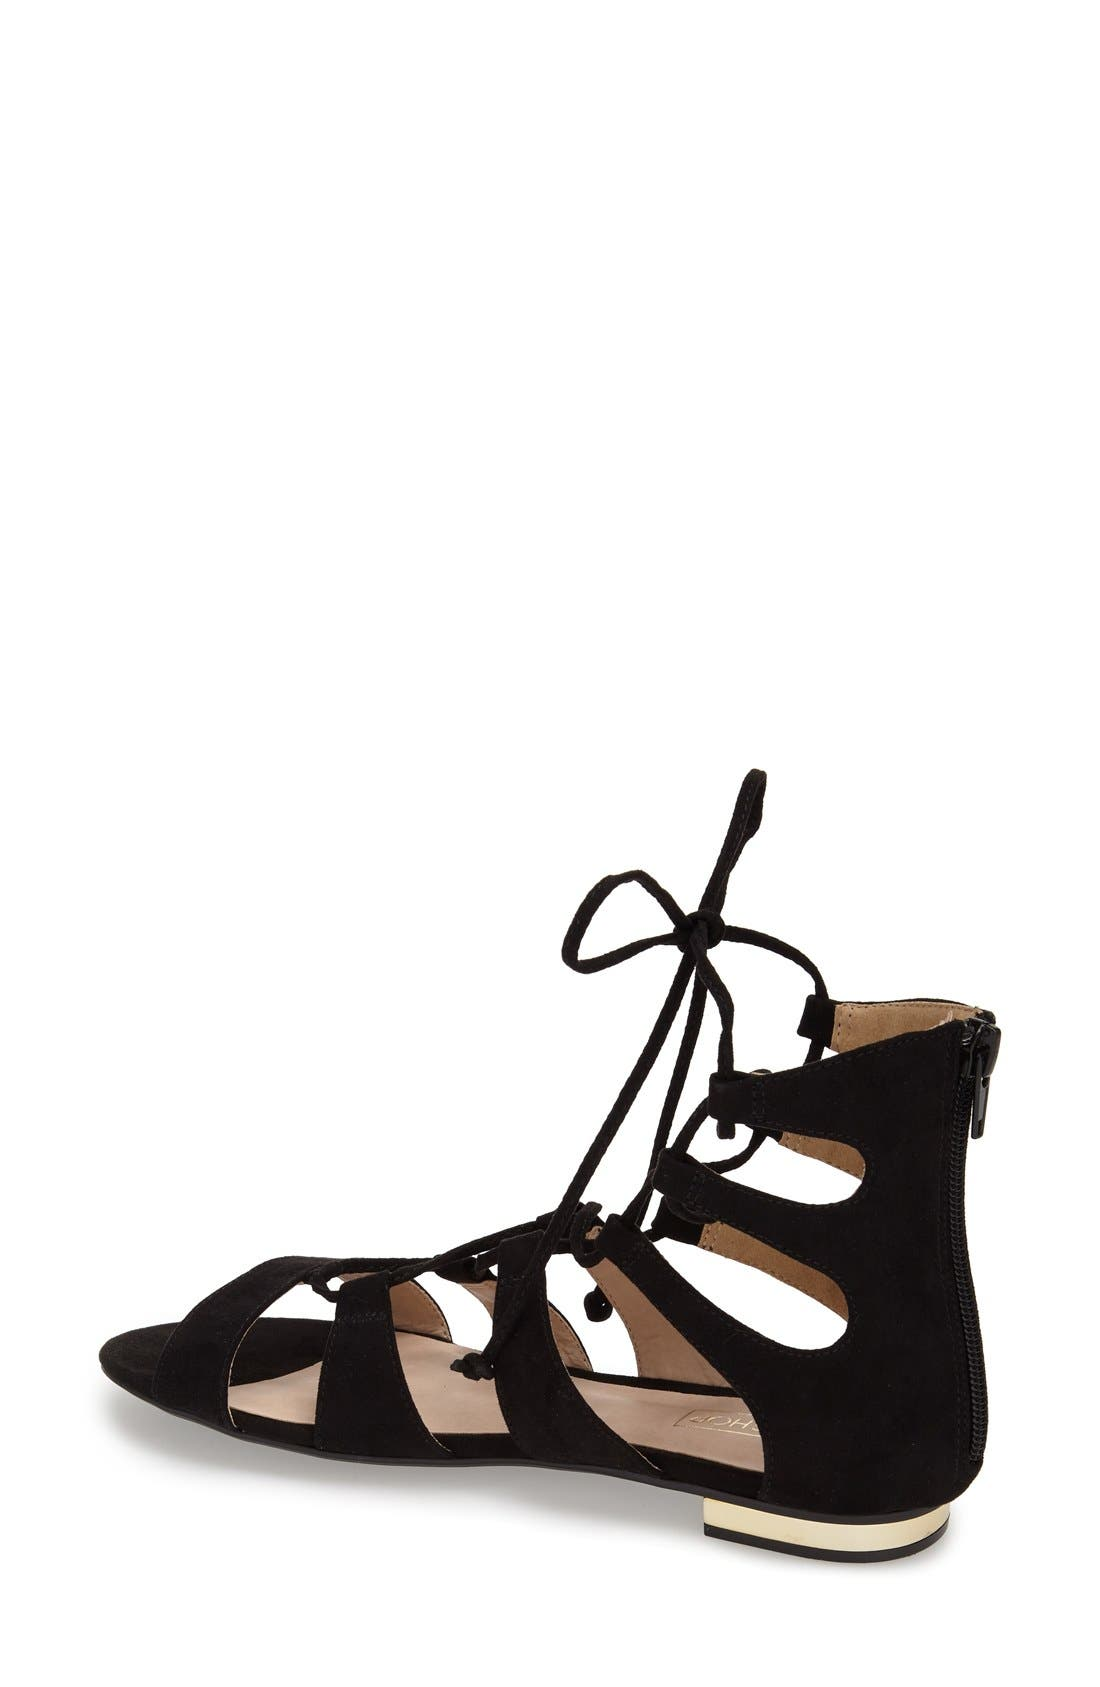 TOPSHOP, Lace-Up Gladiator Sandal, Alternate thumbnail 2, color, 001